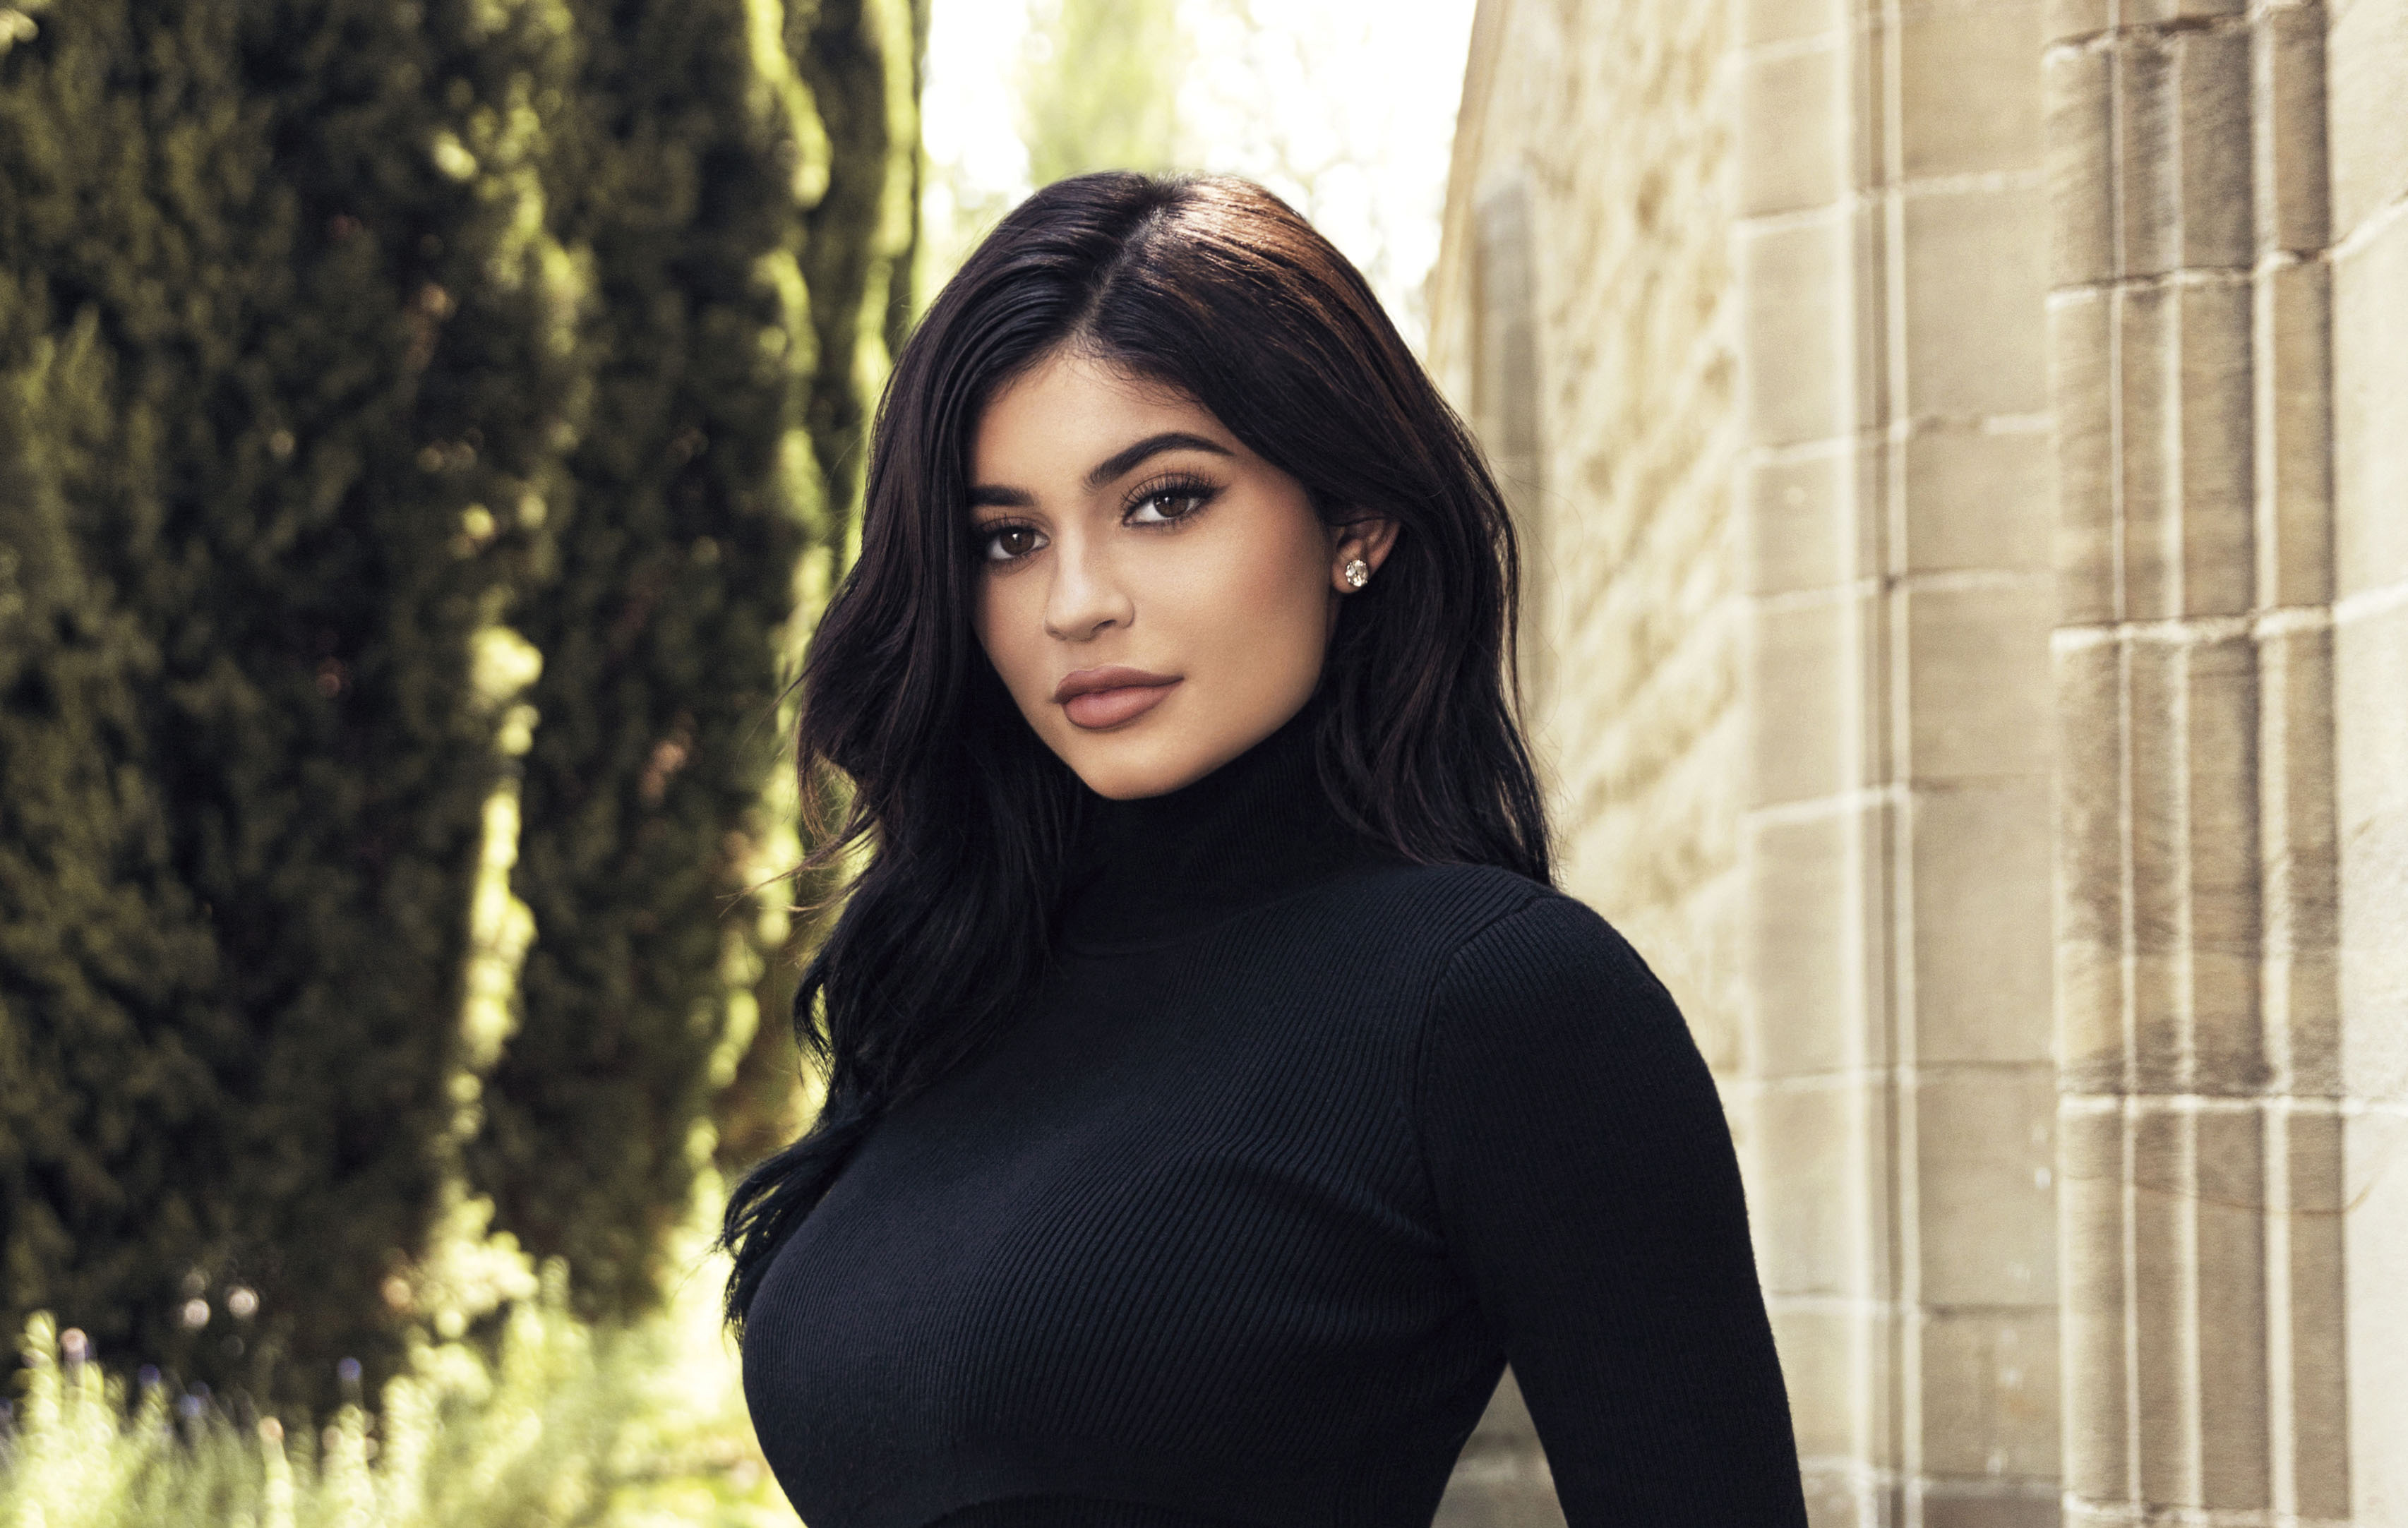 64 Kylie Jenner Hd Wallpapers Background Images